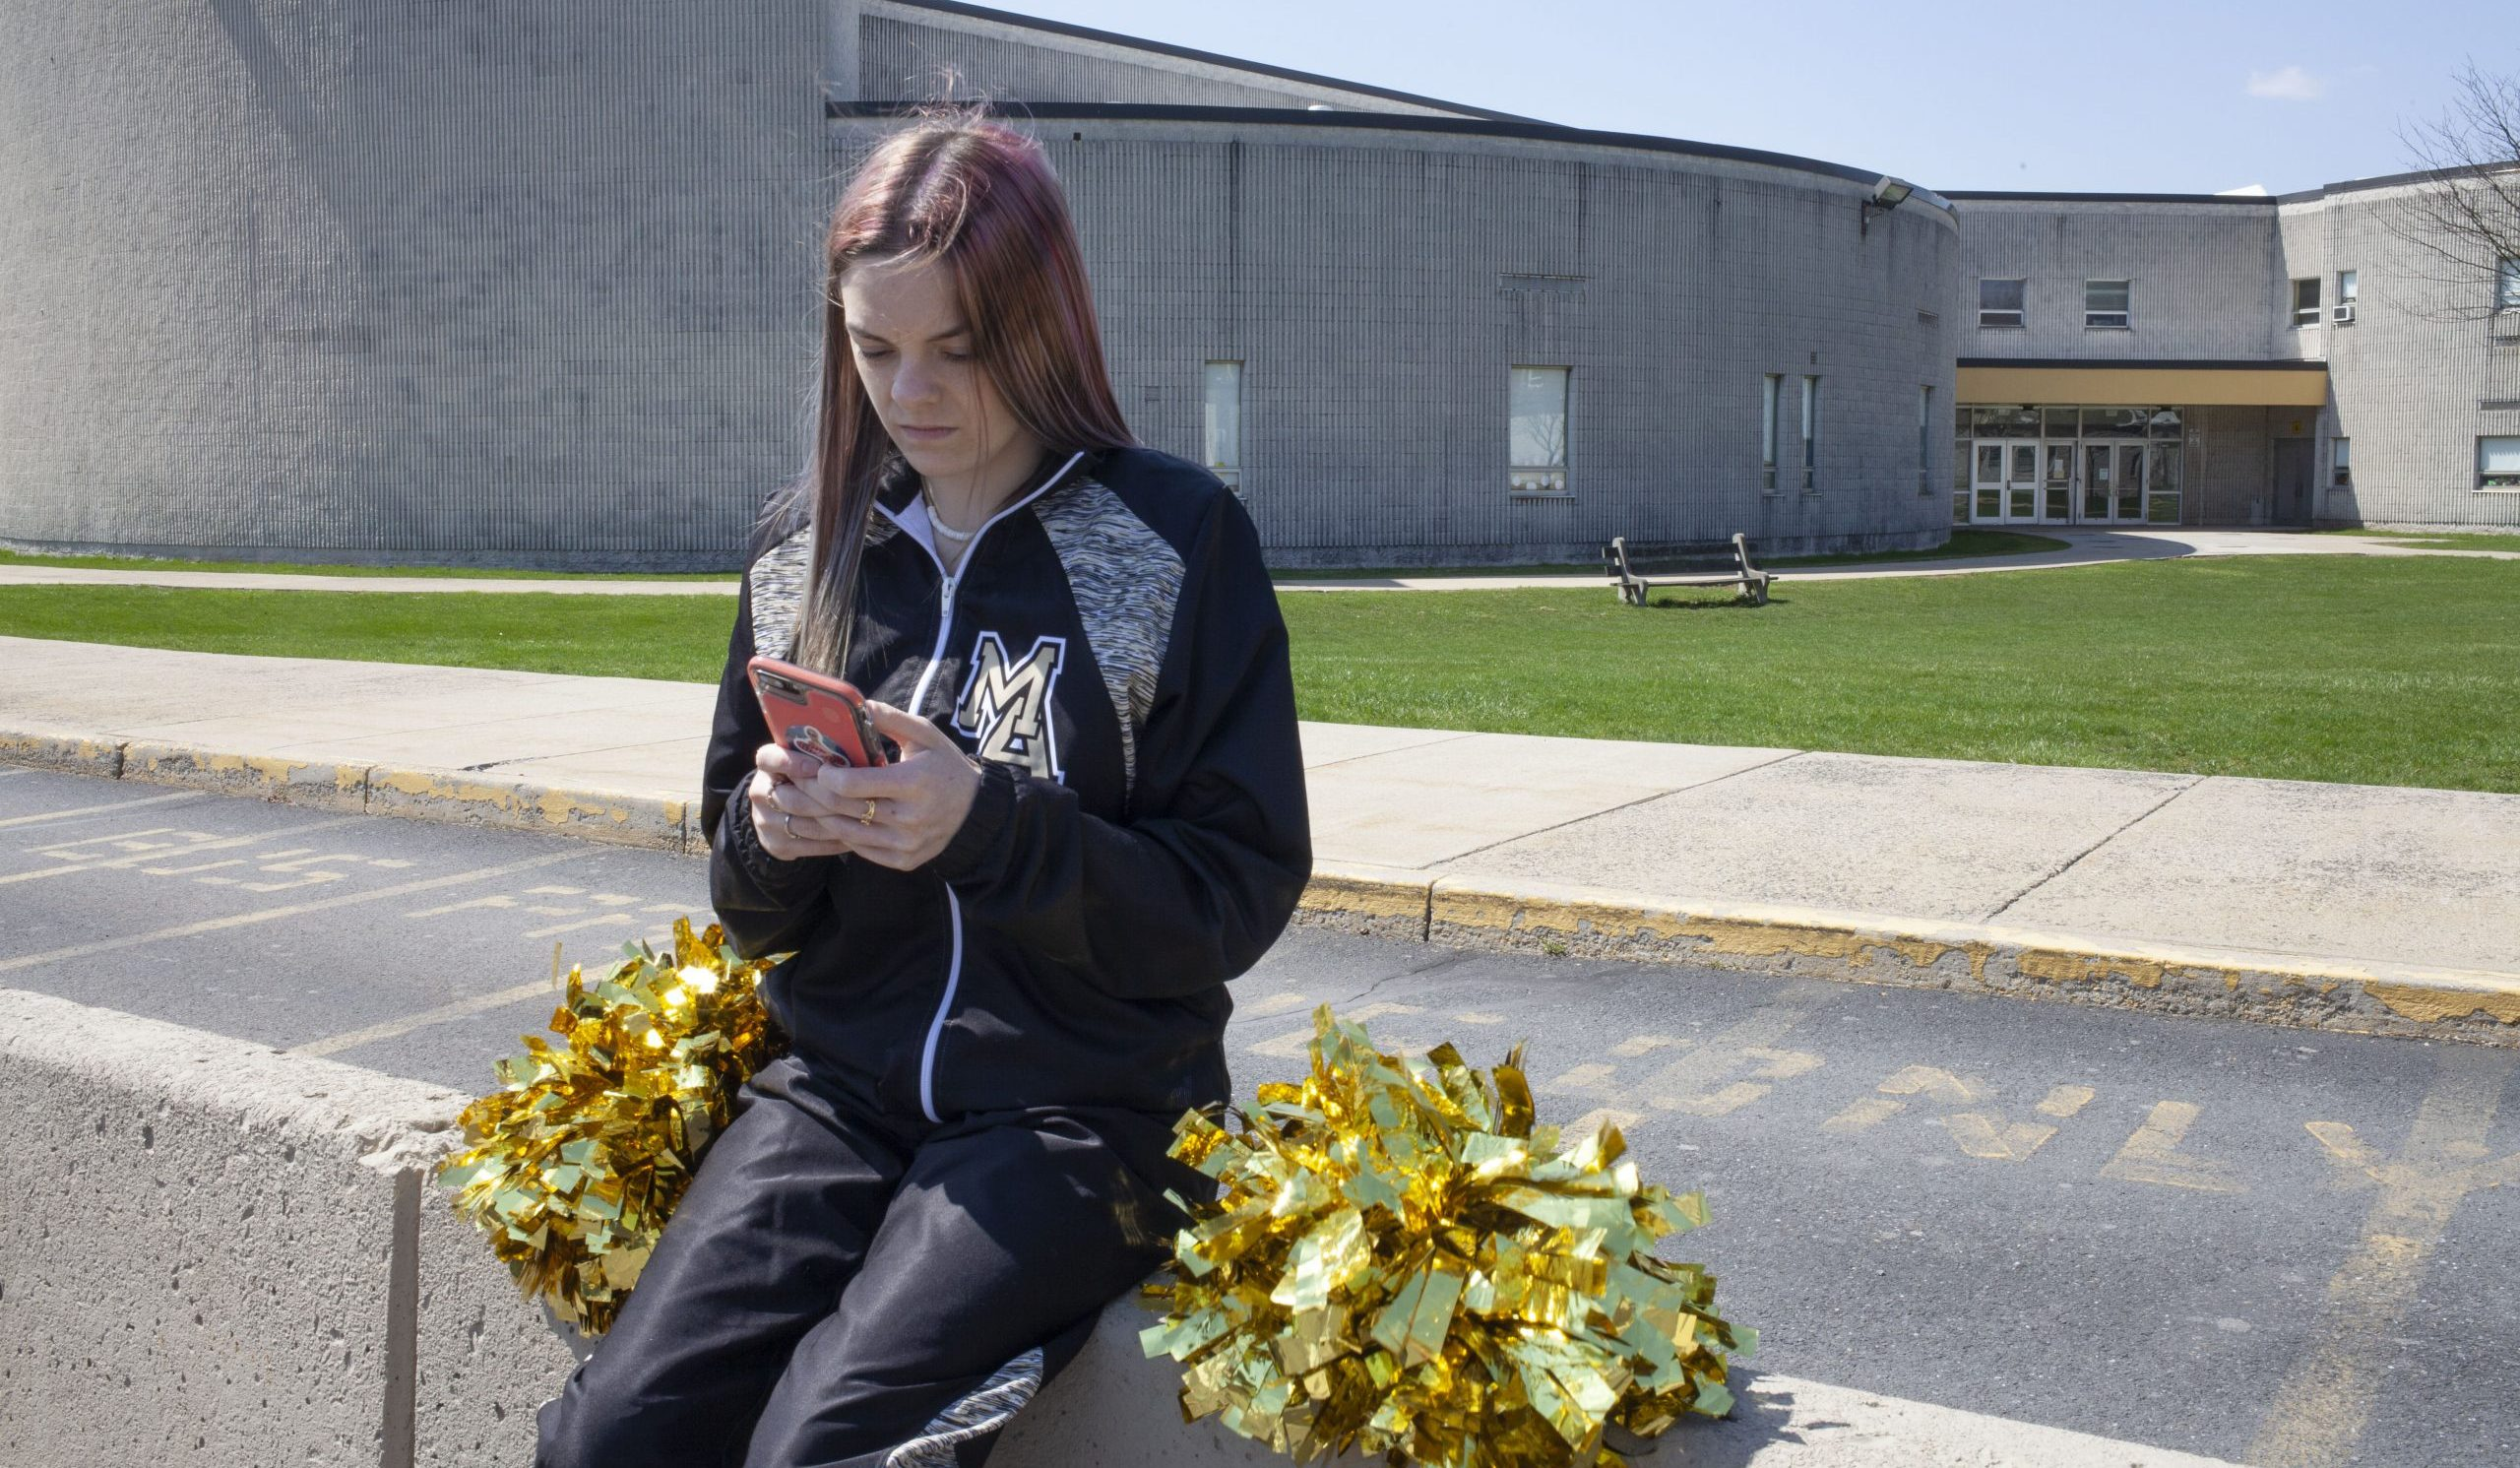 student holding phone and sitting in front of high school with cheerleading pom-poms beside her